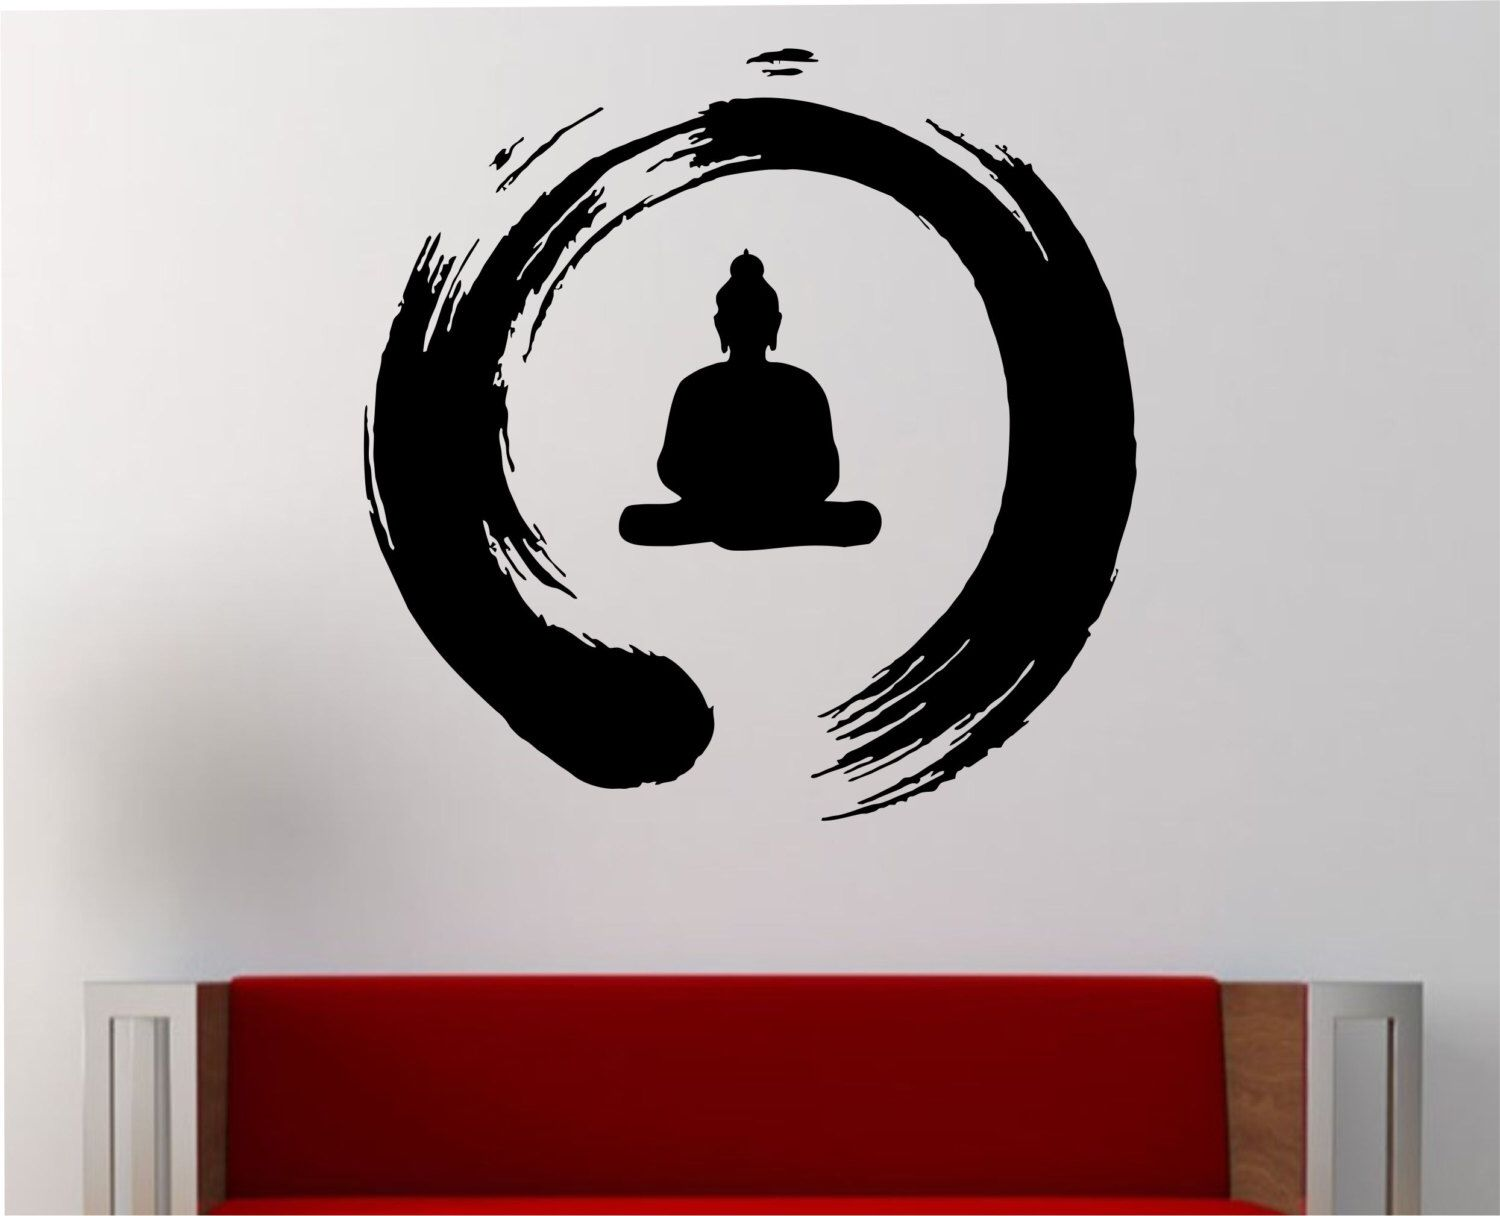 Peace Bedroom Decor Zen Circle With Buddha Wall Decal Vinyl Sticker Art Decor Bedroom